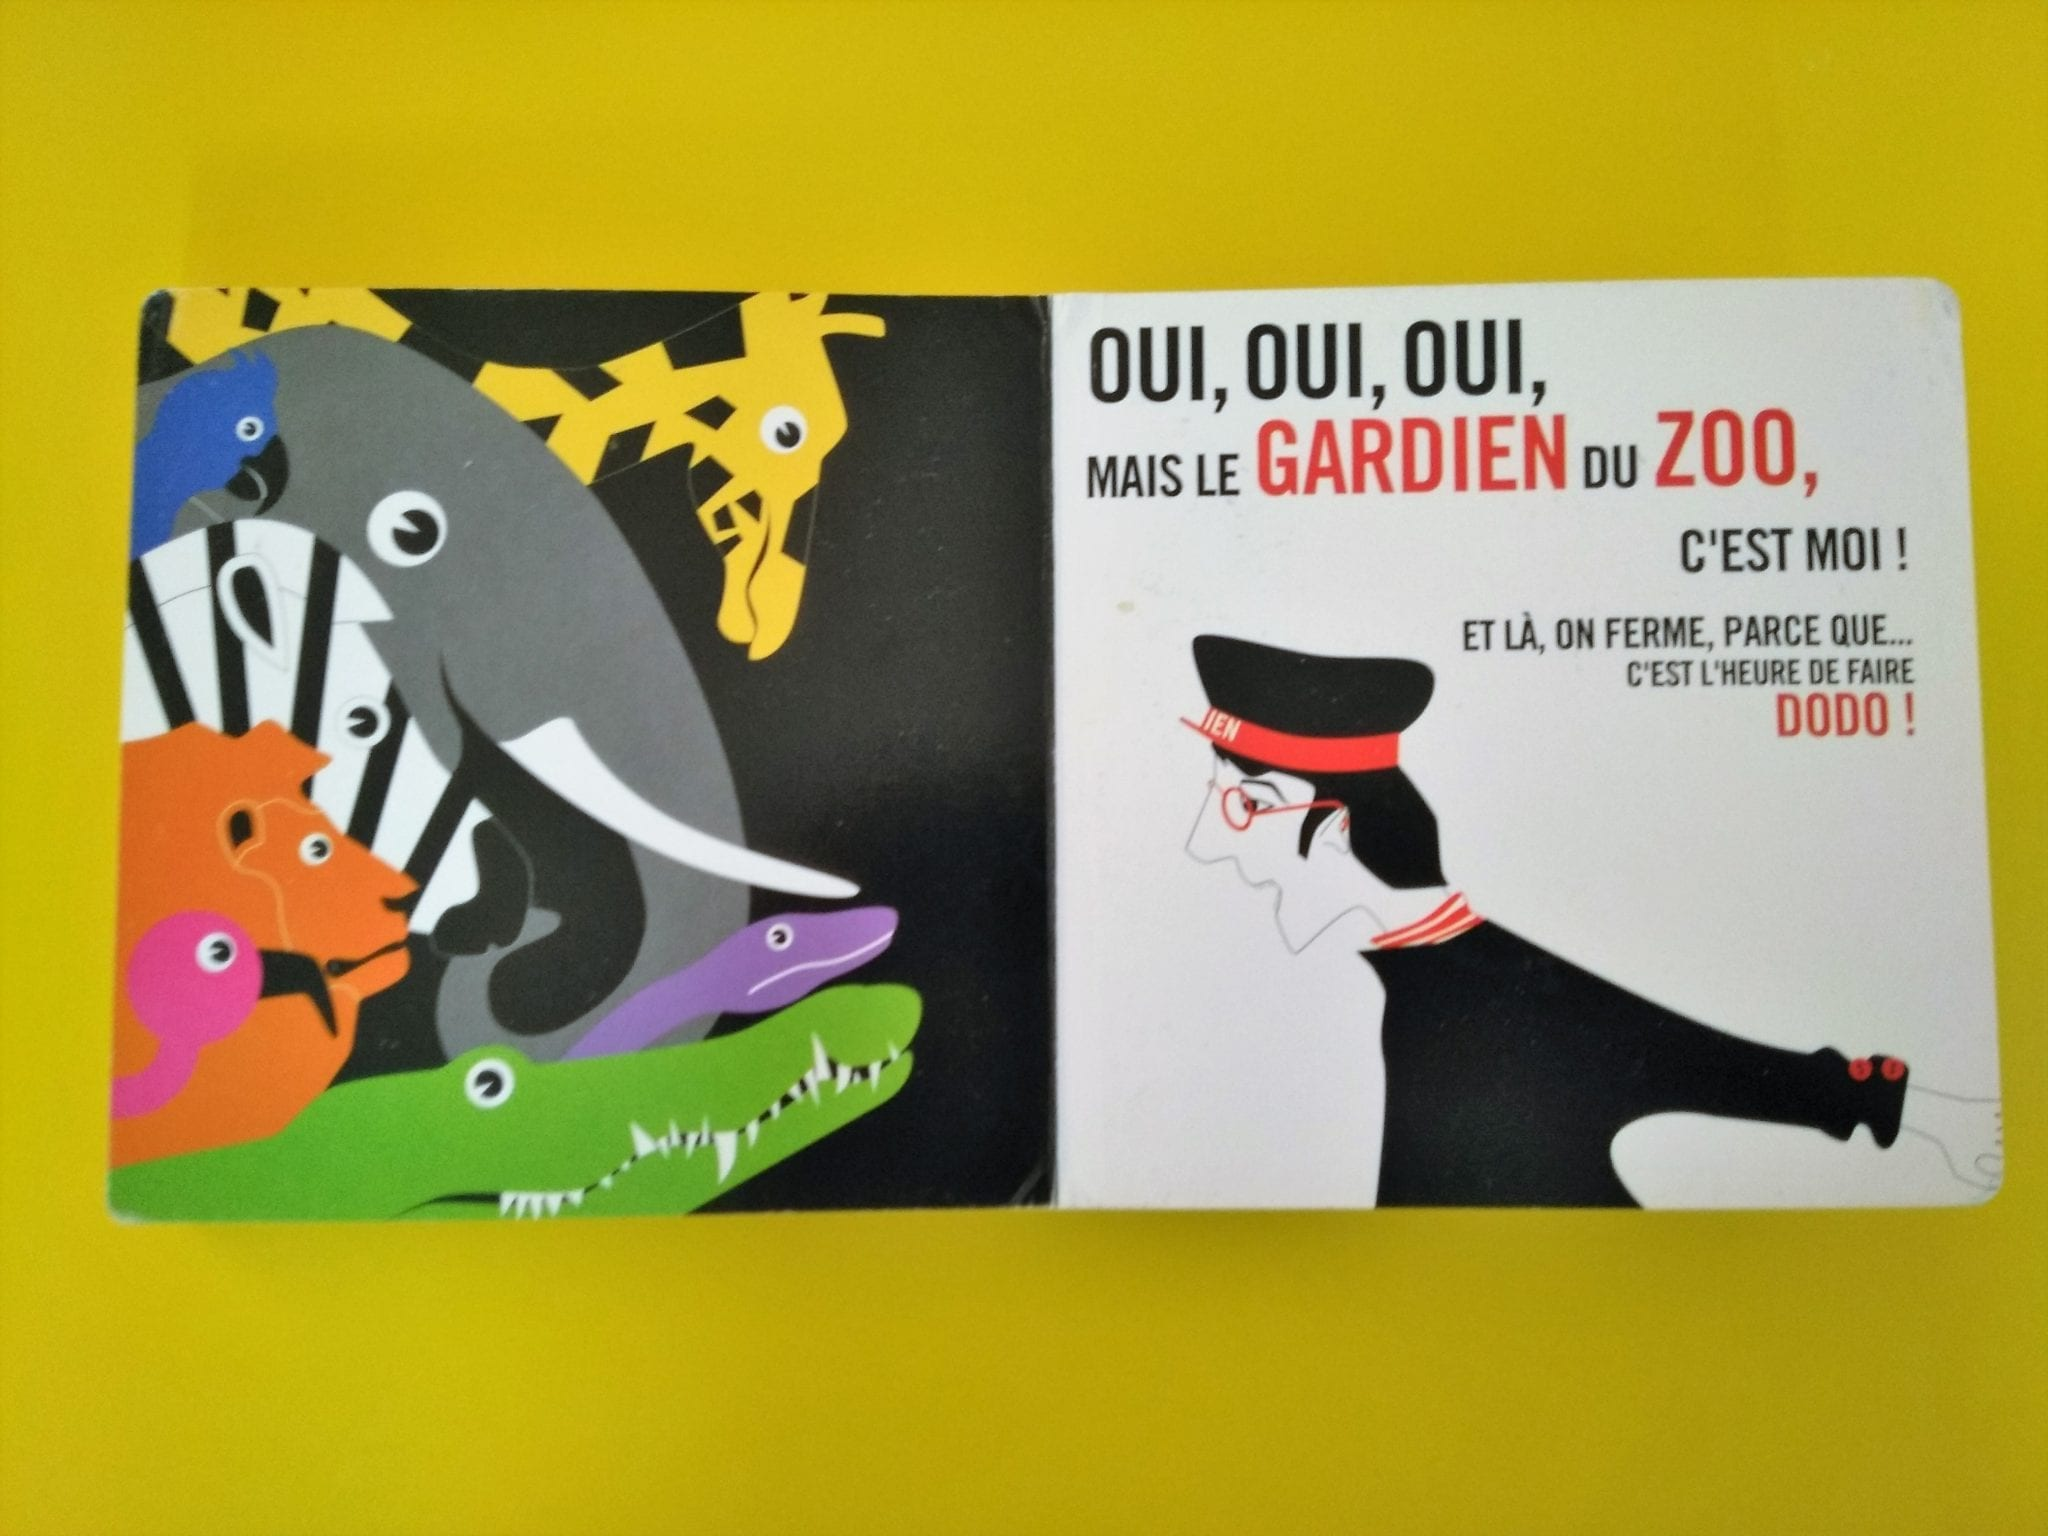 Le zoo ferme ses portes dans Pop-up zoo de martine perrin